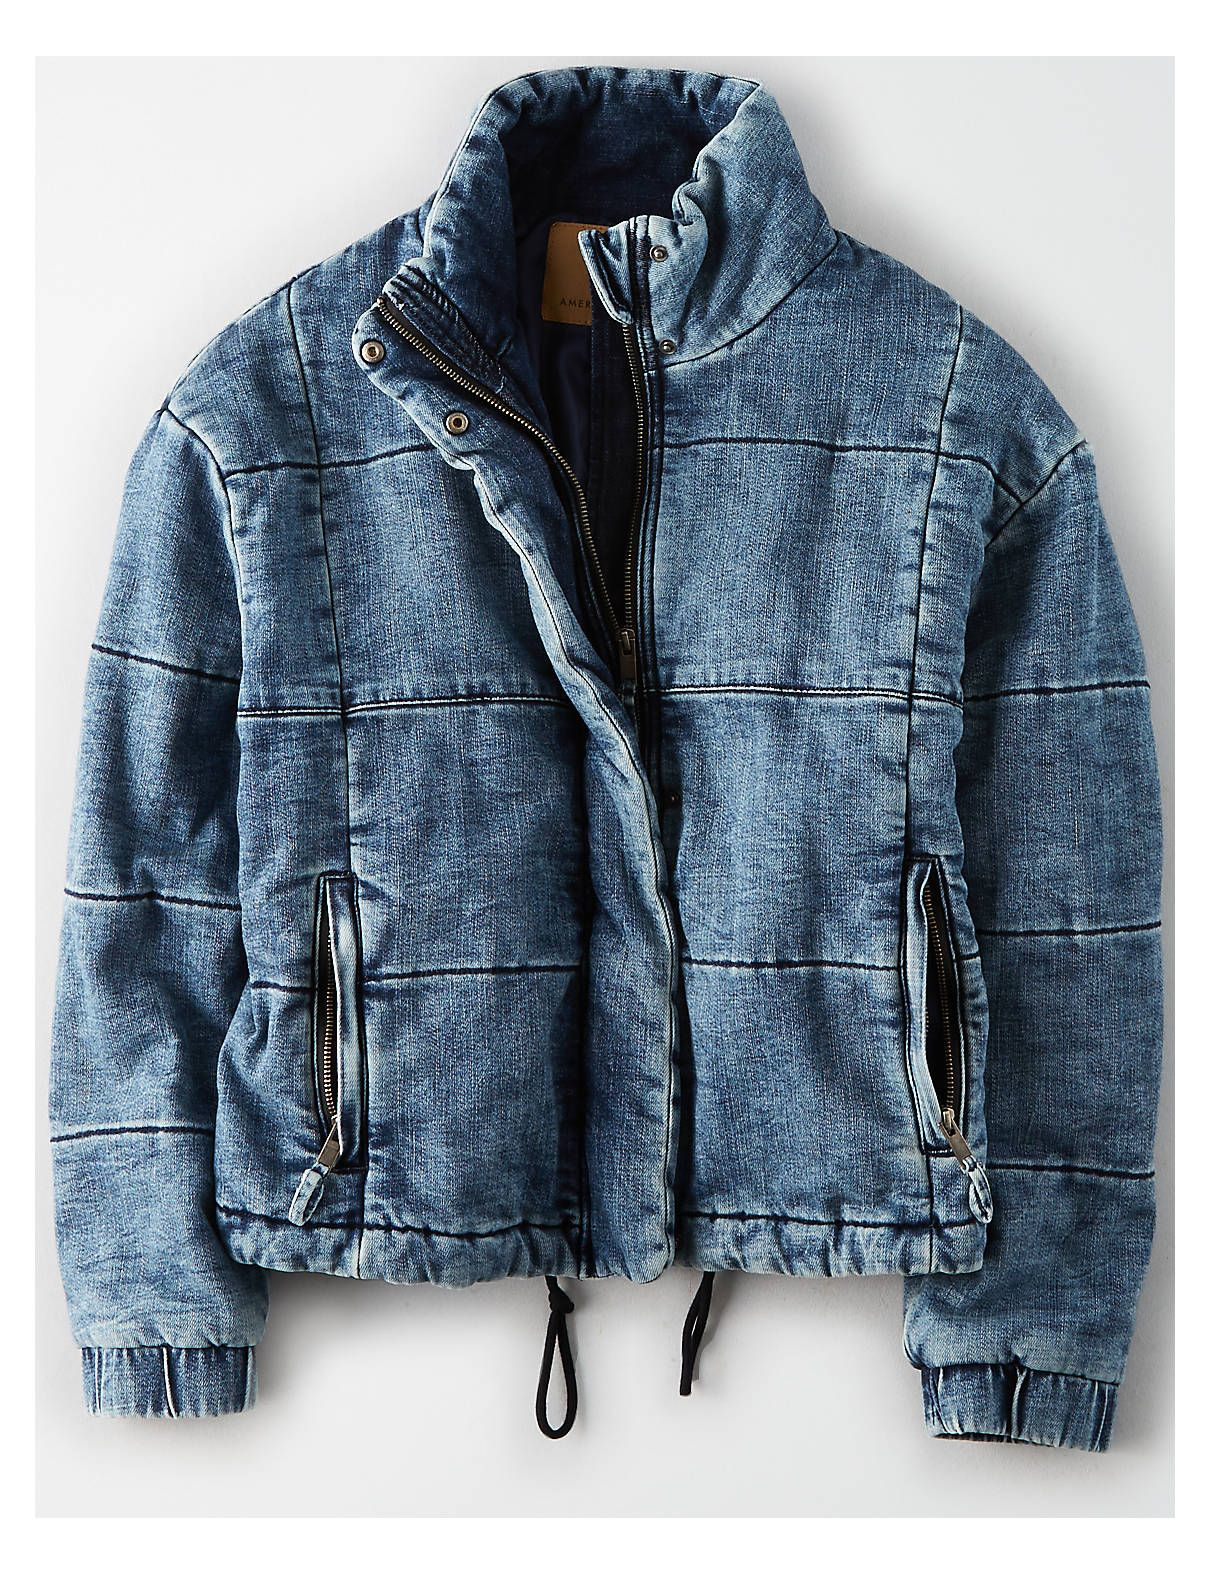 Ae Denim Puffer Jacket Blue American Eagle Outfitters Jean Jacket Outfits Denim Fashion Denim Inspiration [ 1575 x 1211 Pixel ]